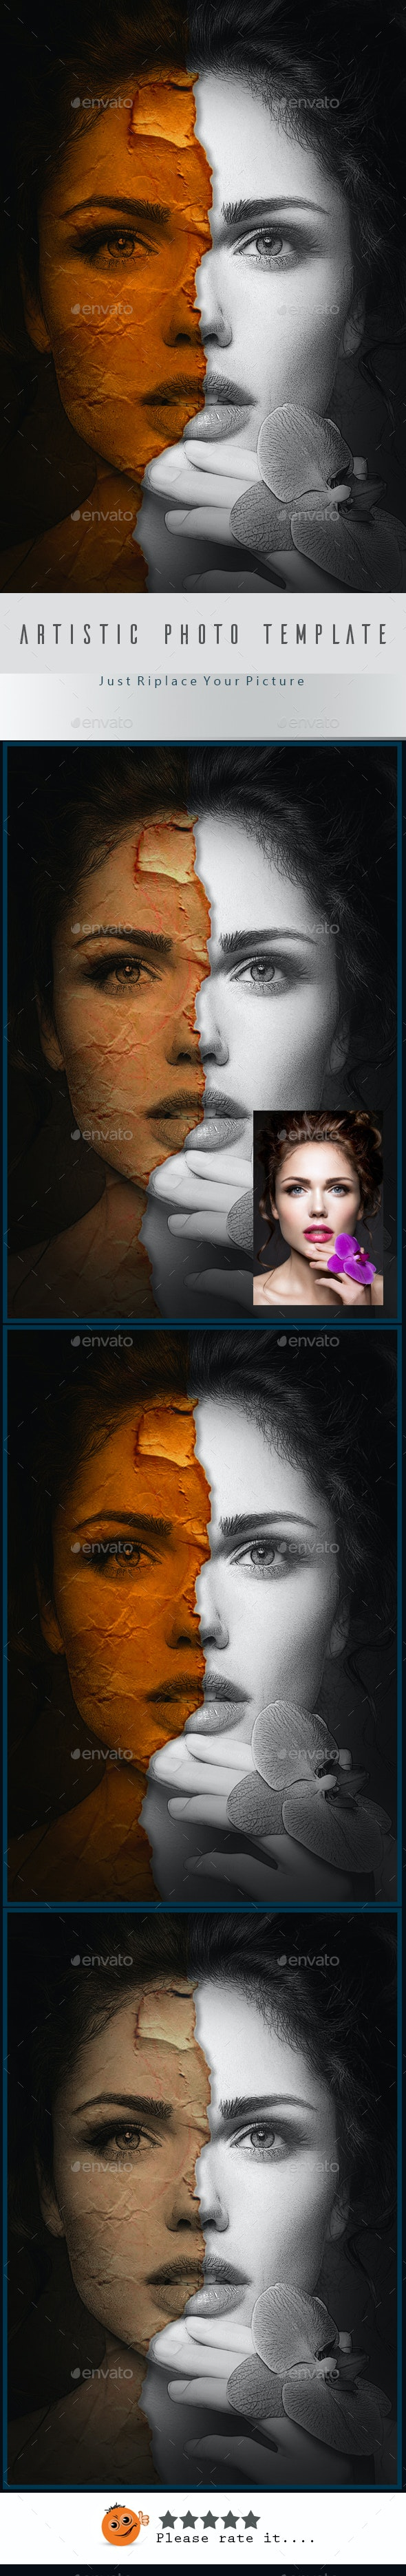 Artistic Photo Template v05